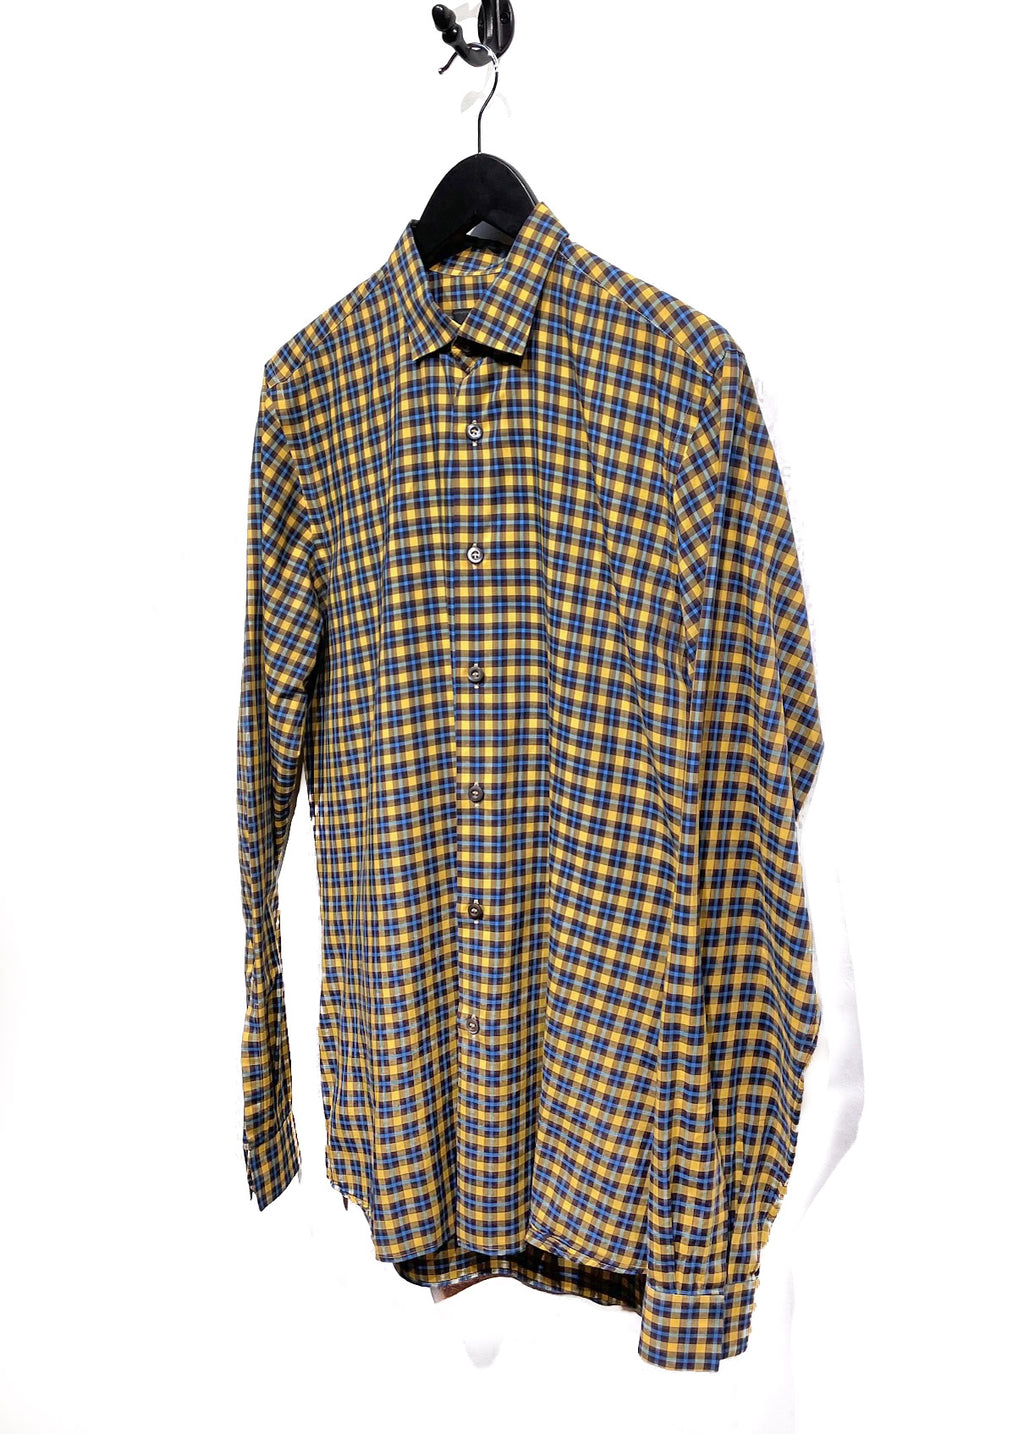 Prada Yellow Blue Checkered Cotton Shirt